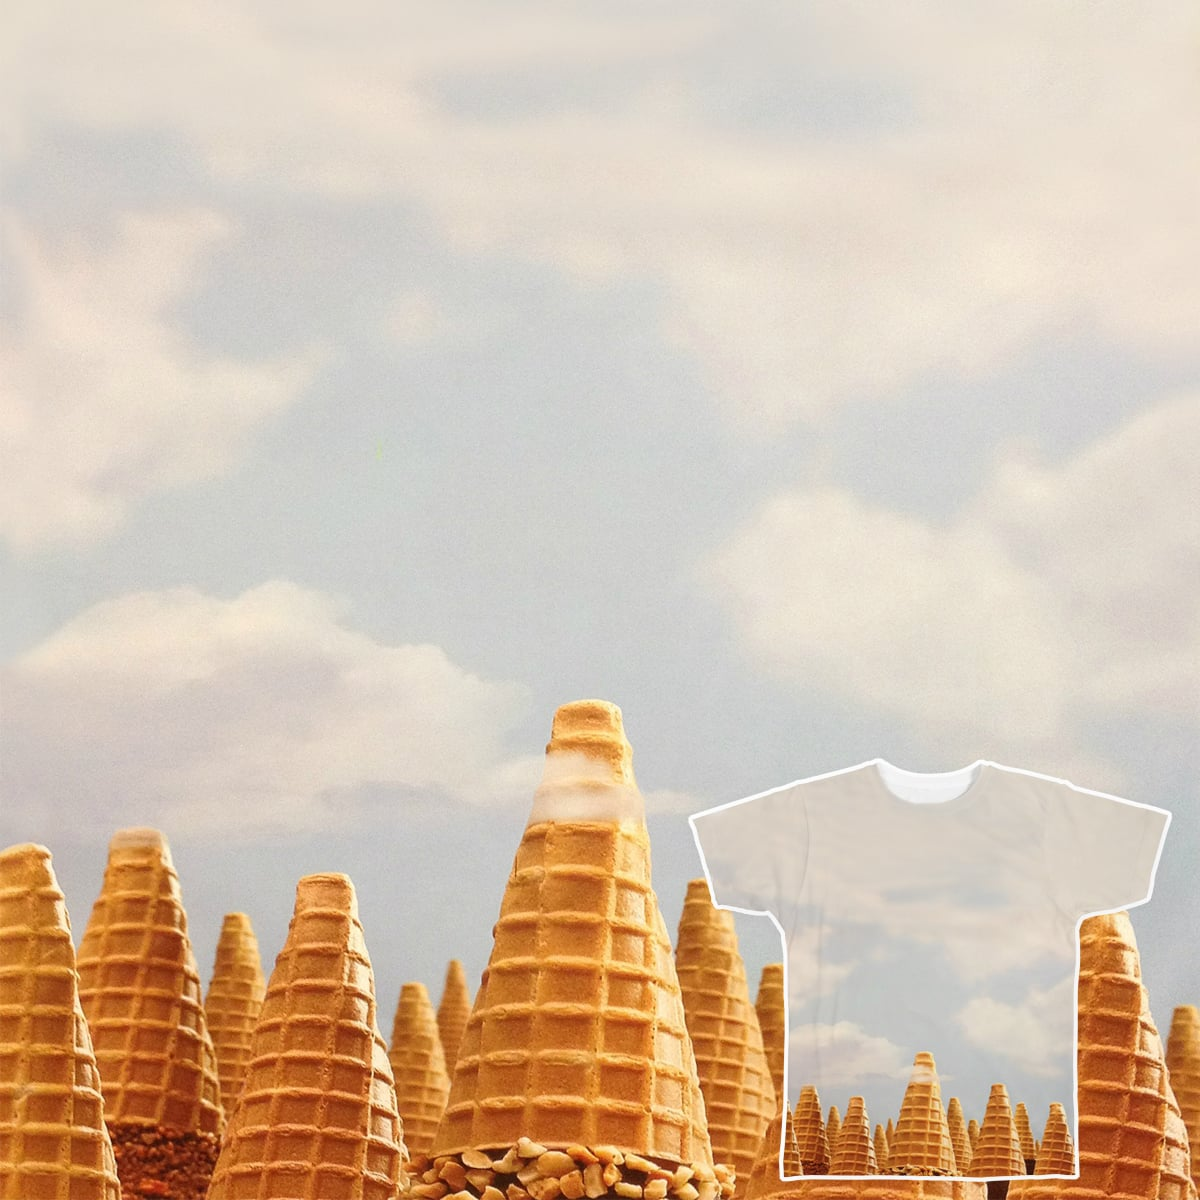 Fabled Cones Montains by M.Awwad on Threadless